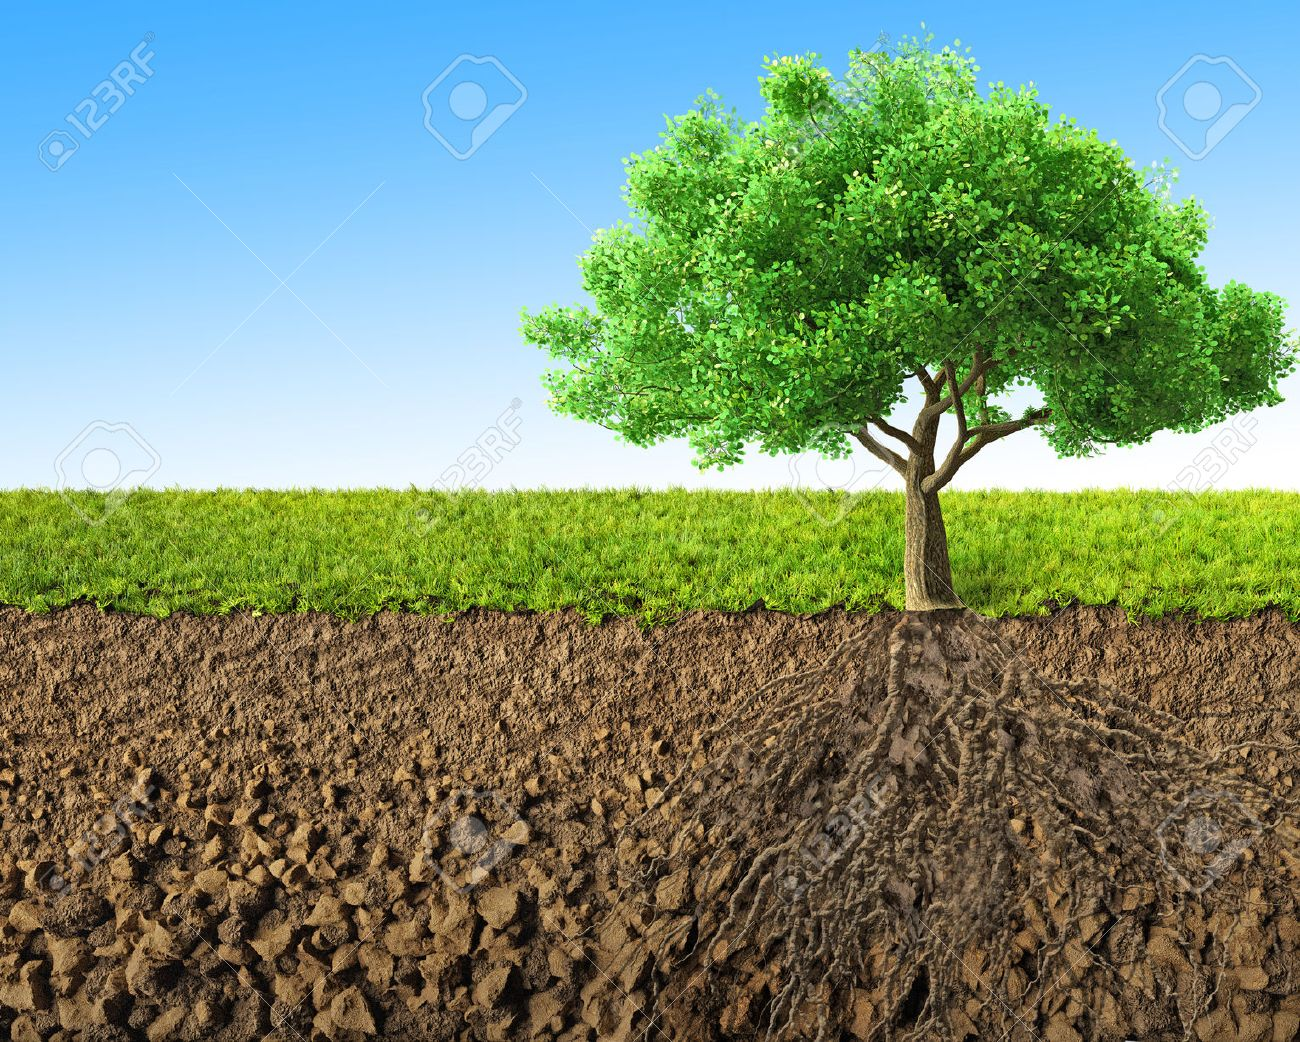 tree with roots 3D rendering - 45586810